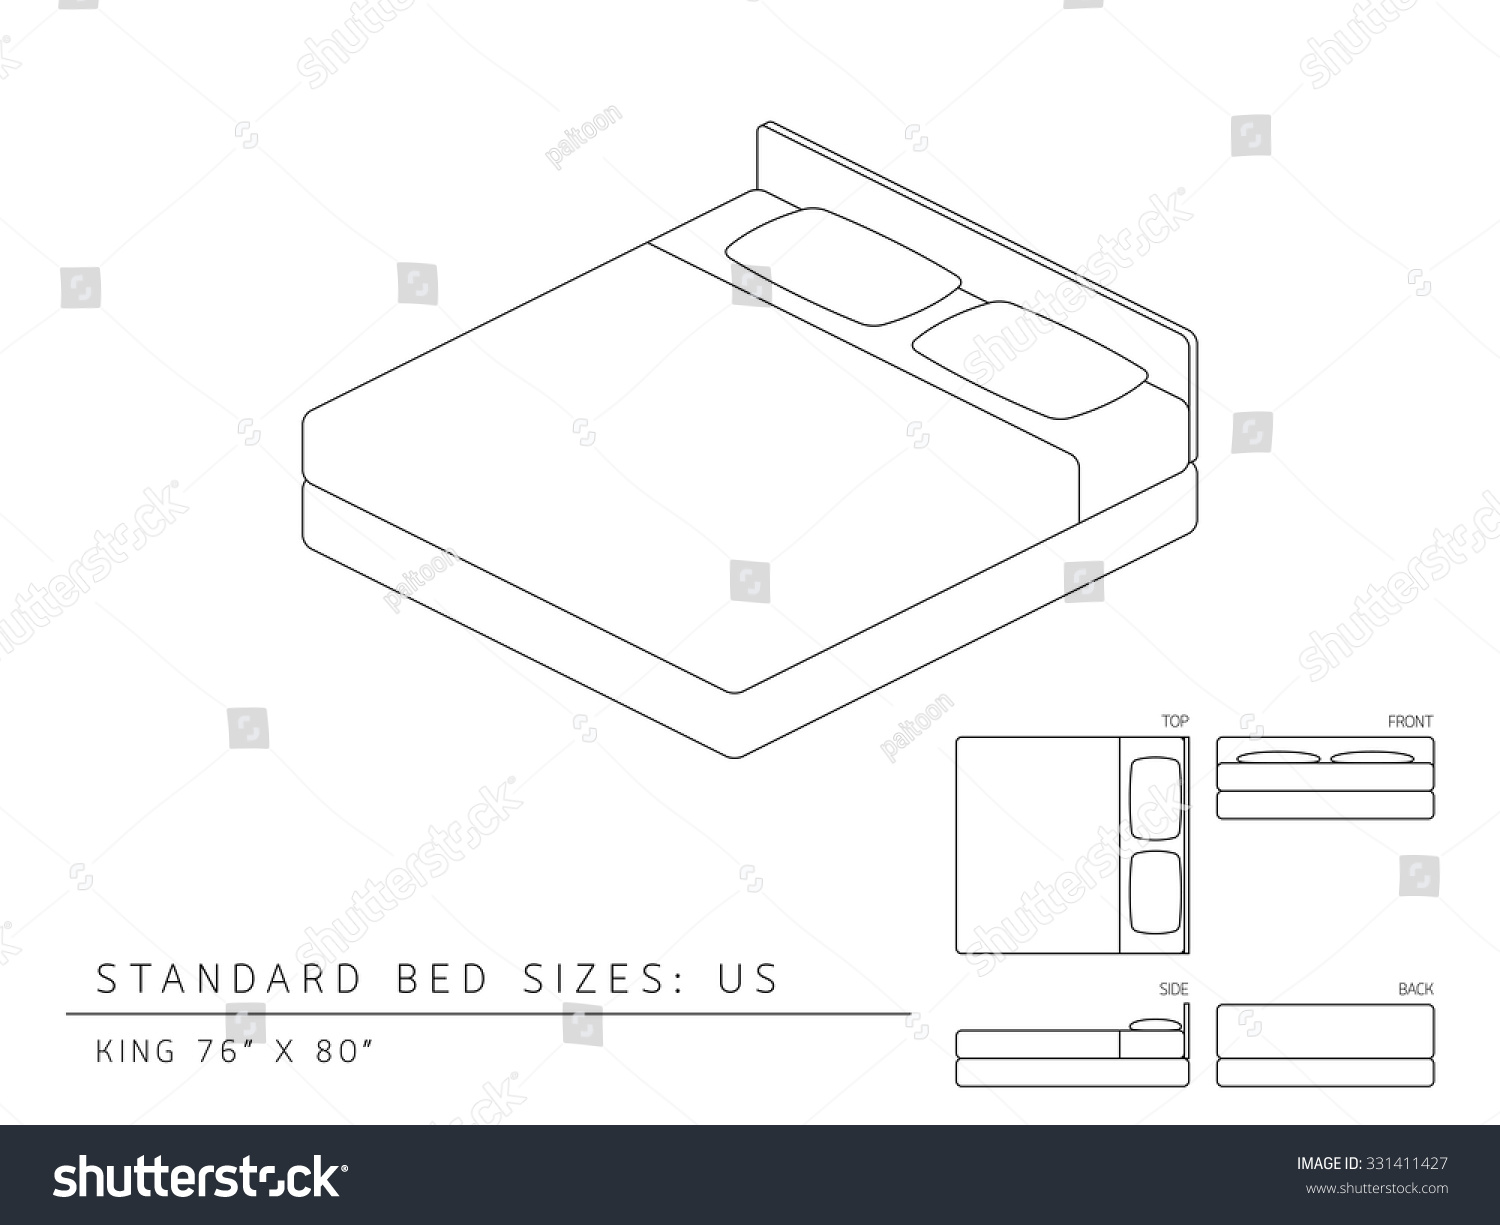 Standard Bed Sizes Standard Bed Sizes Of Us United States Of America King